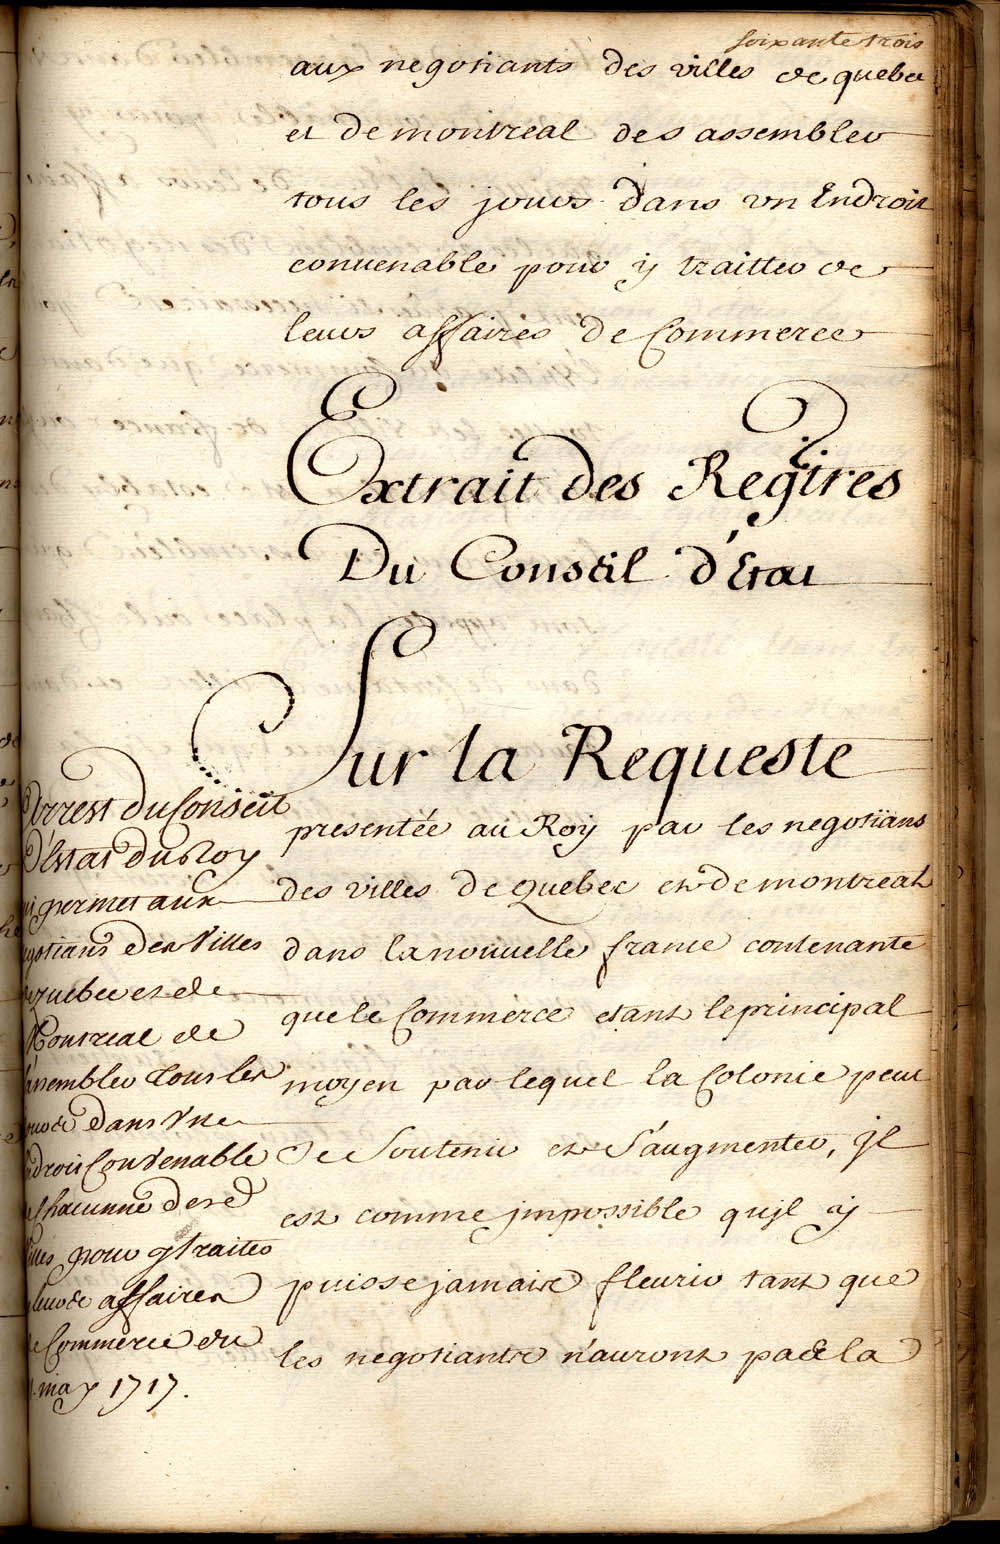 Ruling permitting merchants of the towns of Québec and Montréal to gather daily, in a suitable location, for the purpose of doing business, May 11, 1717, CA ANQ-Q TP1 S35/2 Fonds Conseil souverain Série Arrêts du Conseil d'État du roi Registre F (vol. 6) fol. 63-64